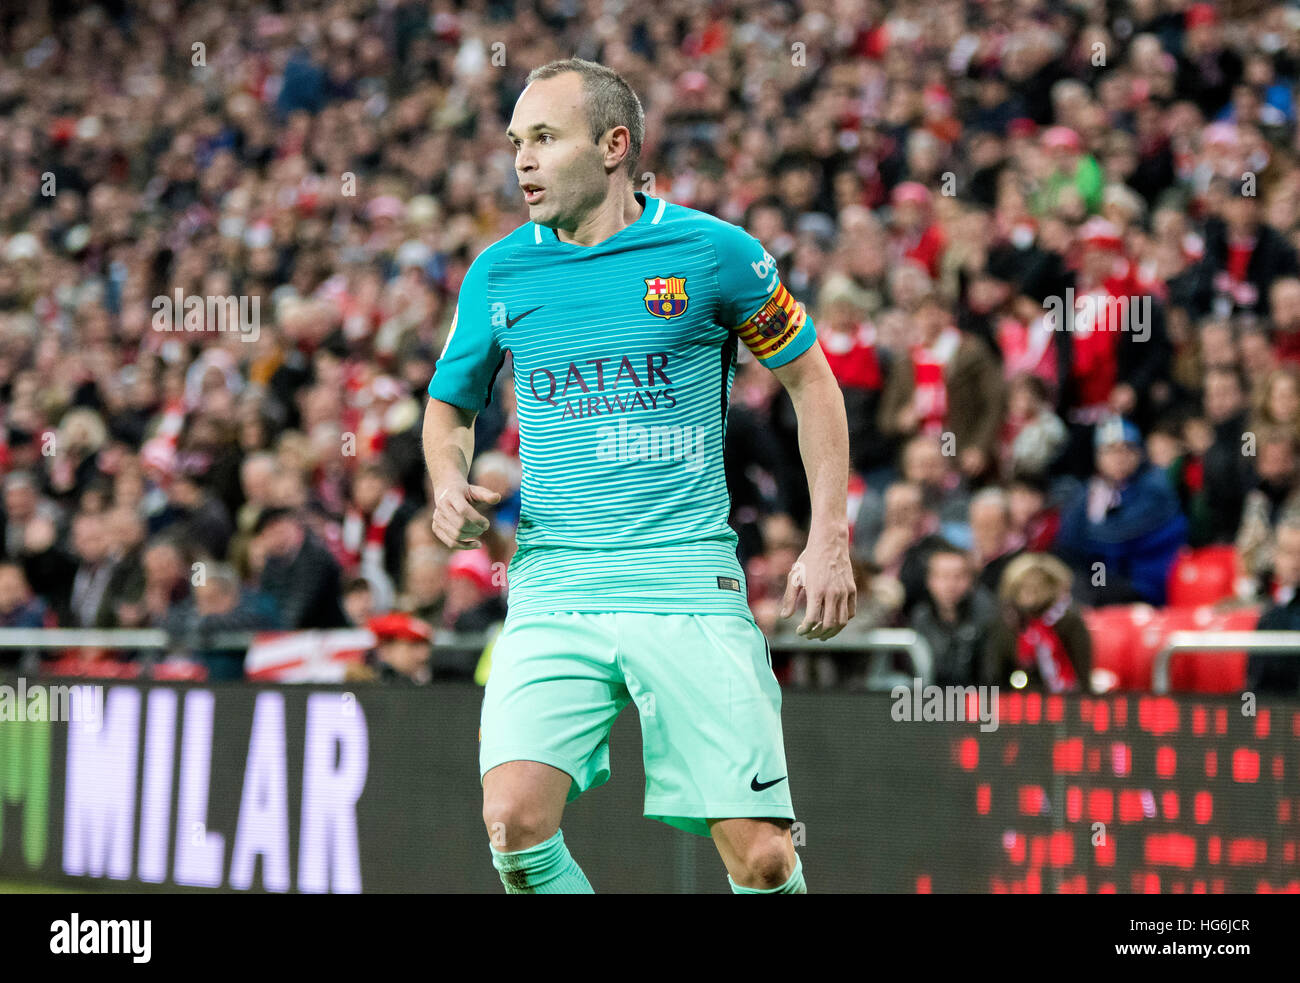 Bilbao, Spain. 5th January, 2017. Andres Iniesta (Mildfierder, FC Barcelona) during the football match of Spanish - Stock Image